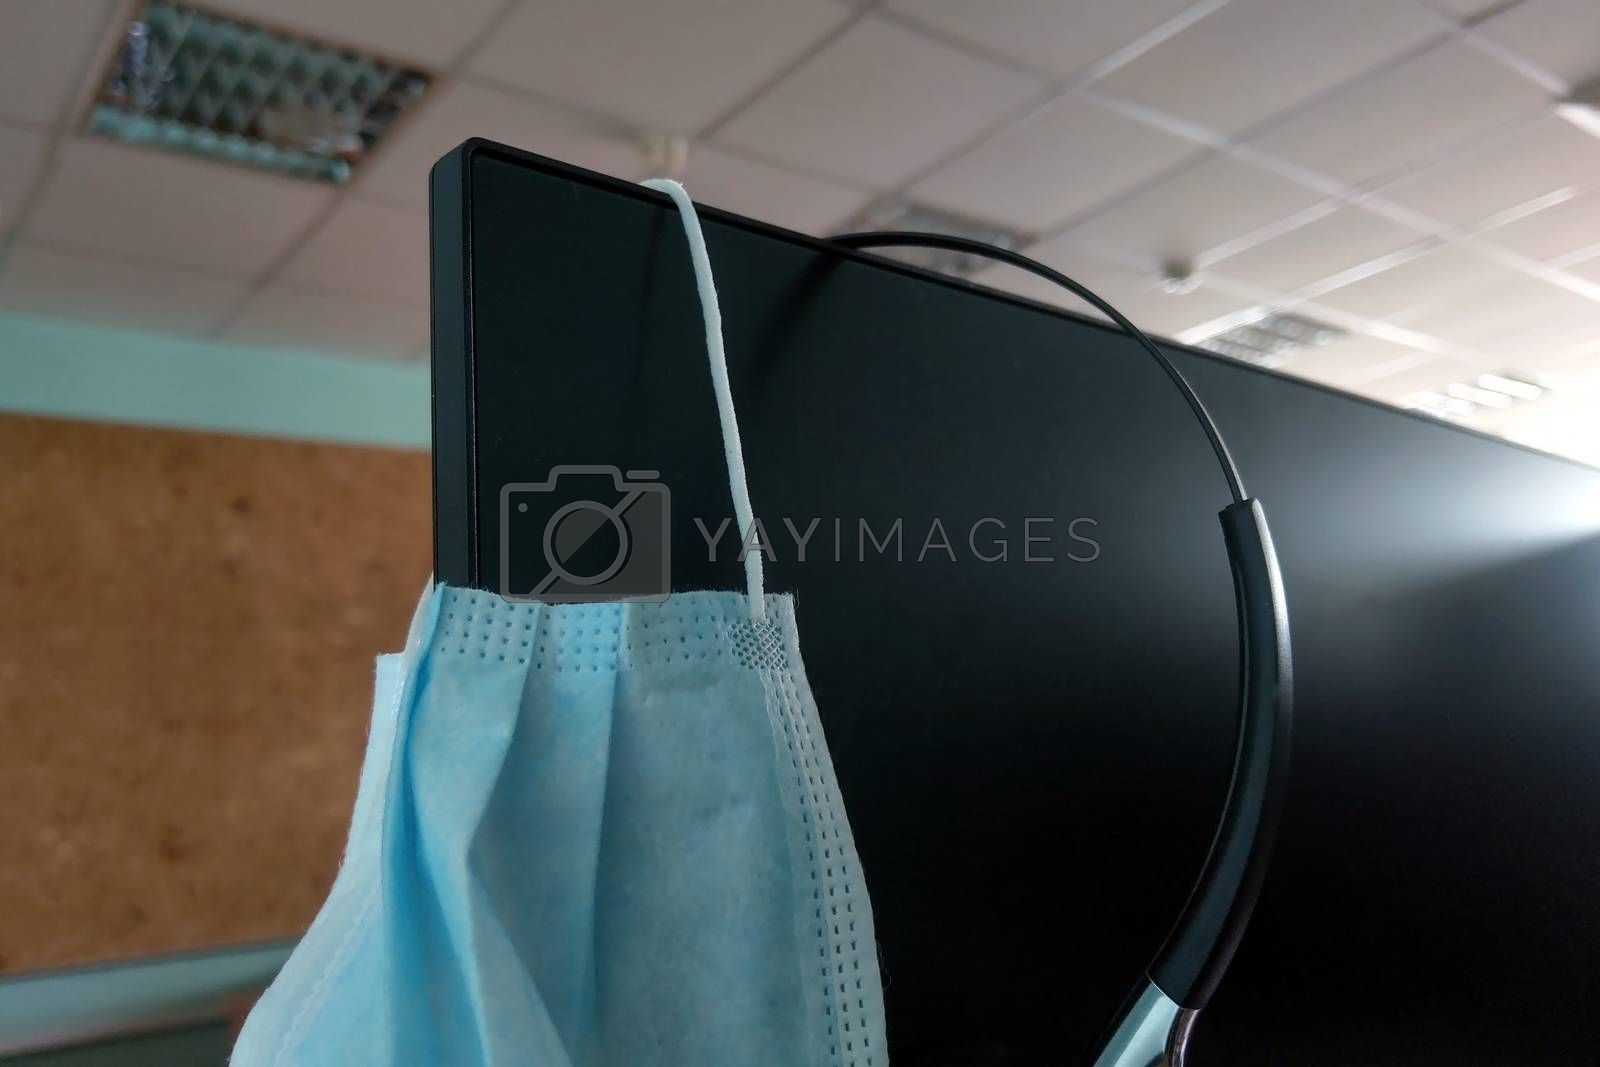 A medical mask hangs on the computer monitor. COVID protection - 19